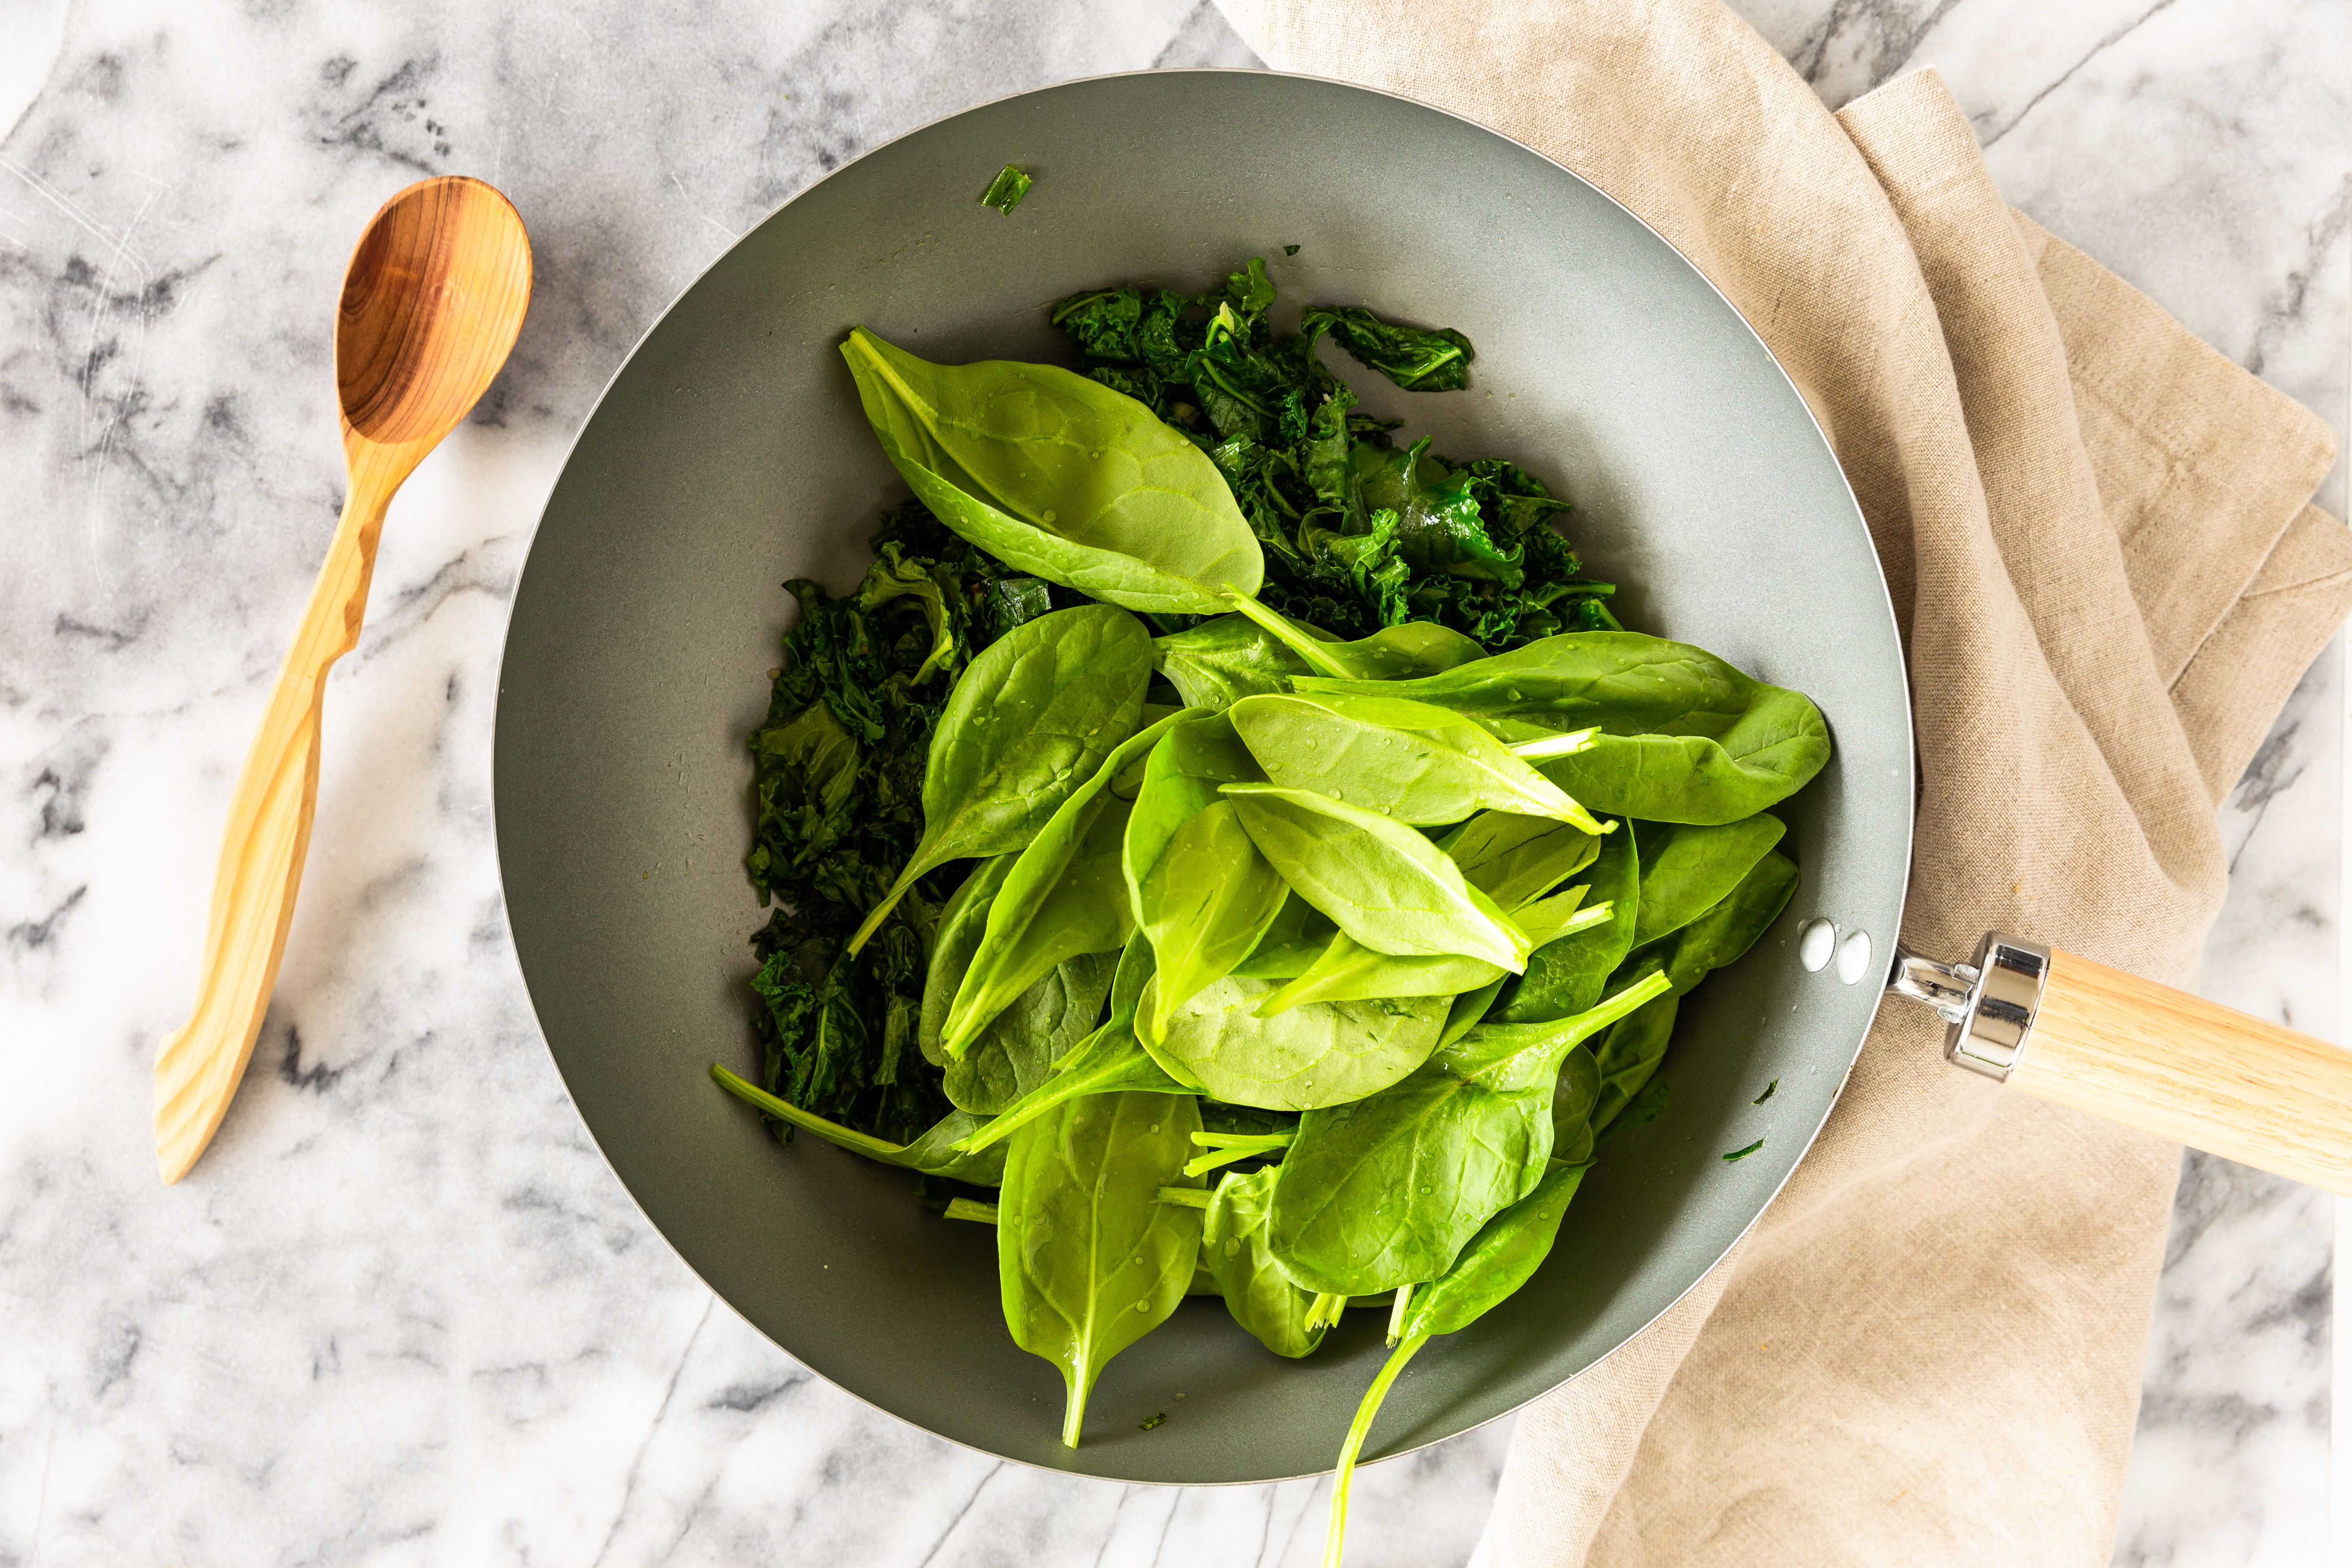 Add spinach to pan with kale and chard